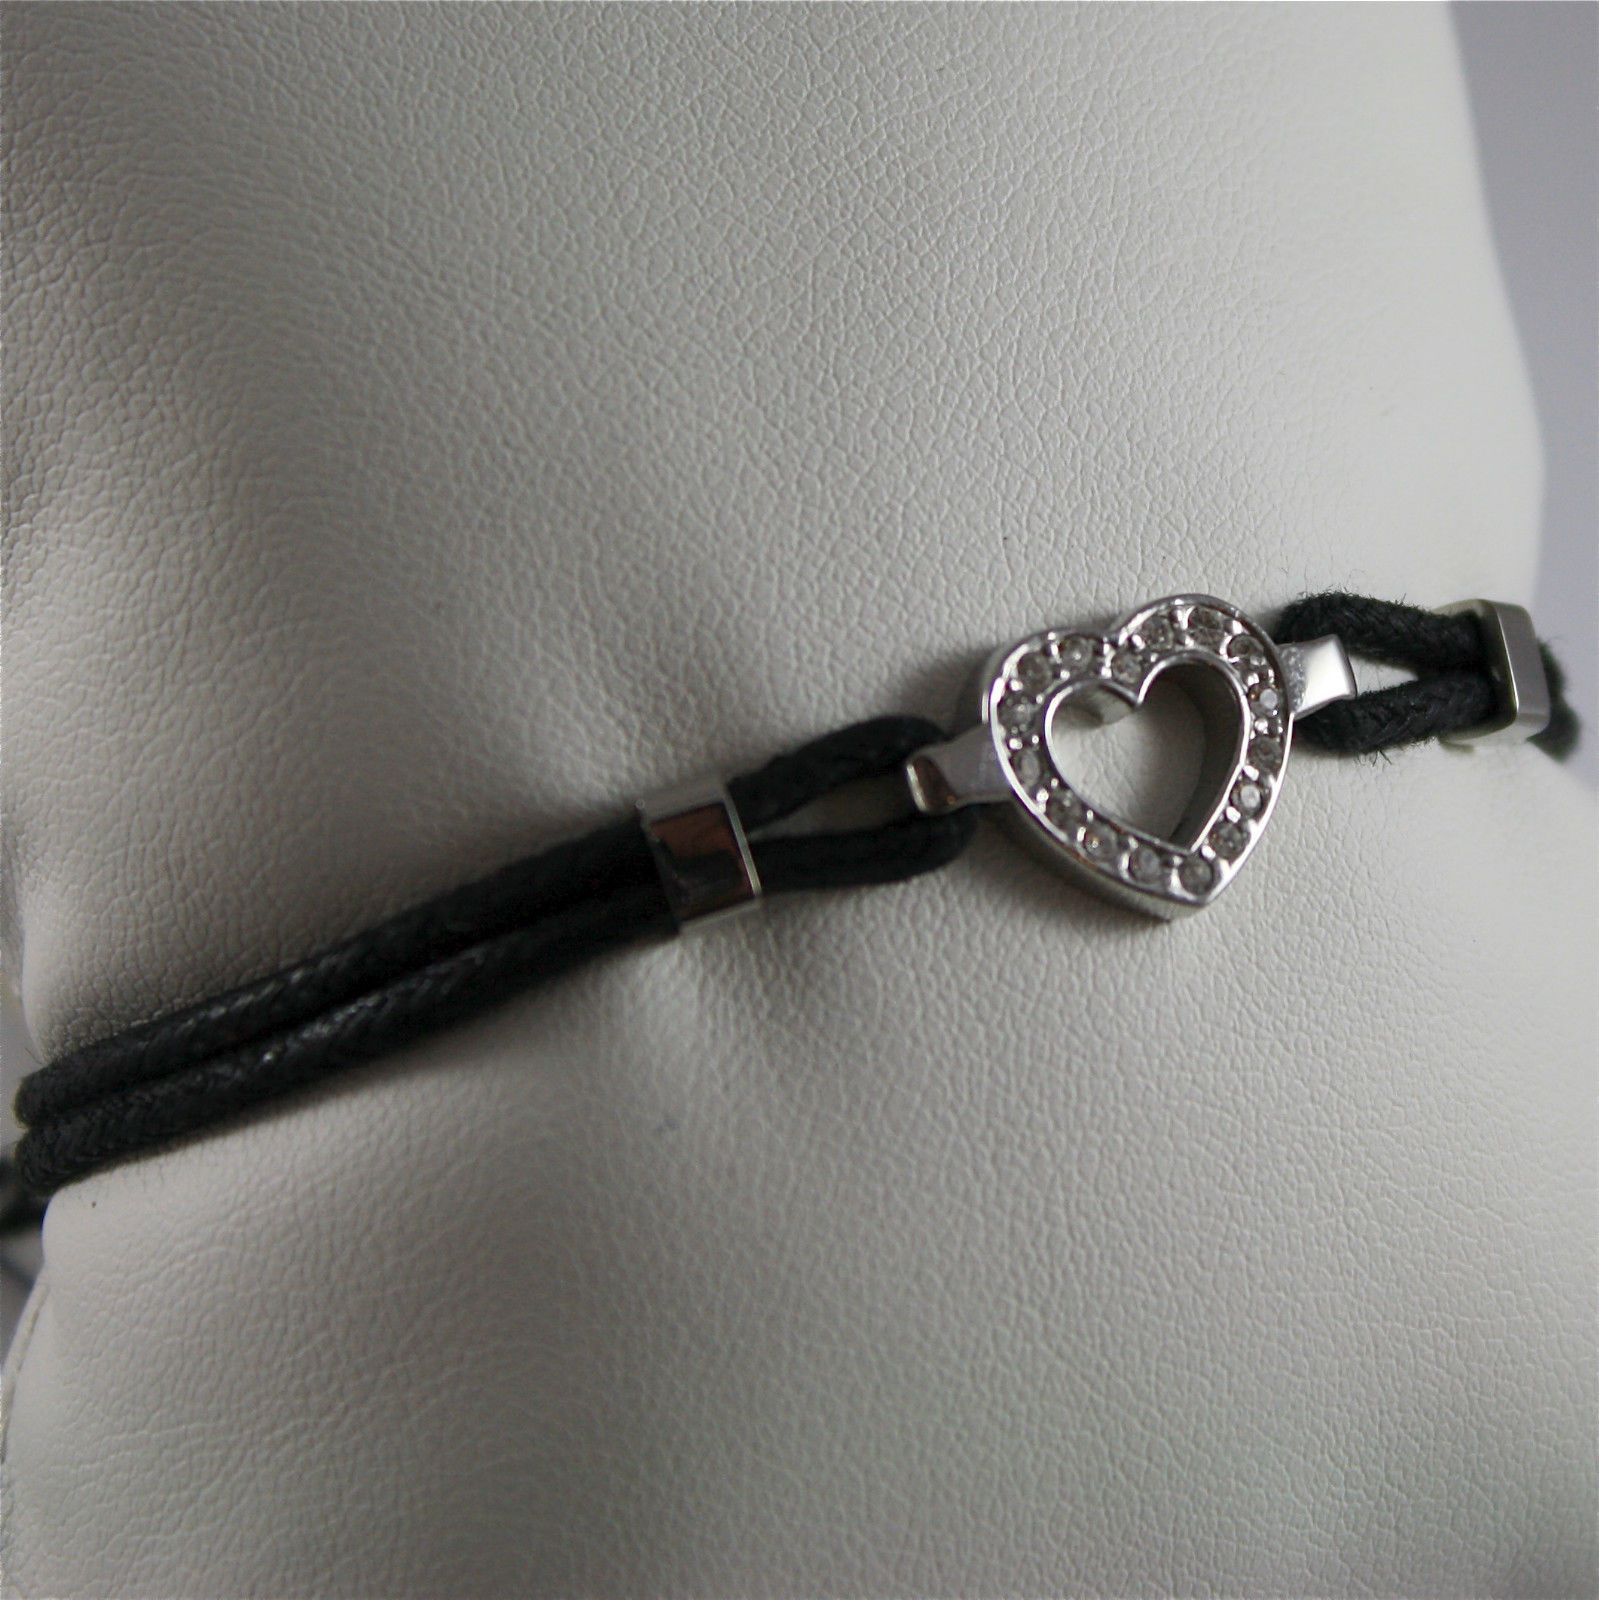 S'AGAPO' BRACELET, 316L STEEL, HEART, WAXED BLACK COTTON, HEART, CRYSTALS.